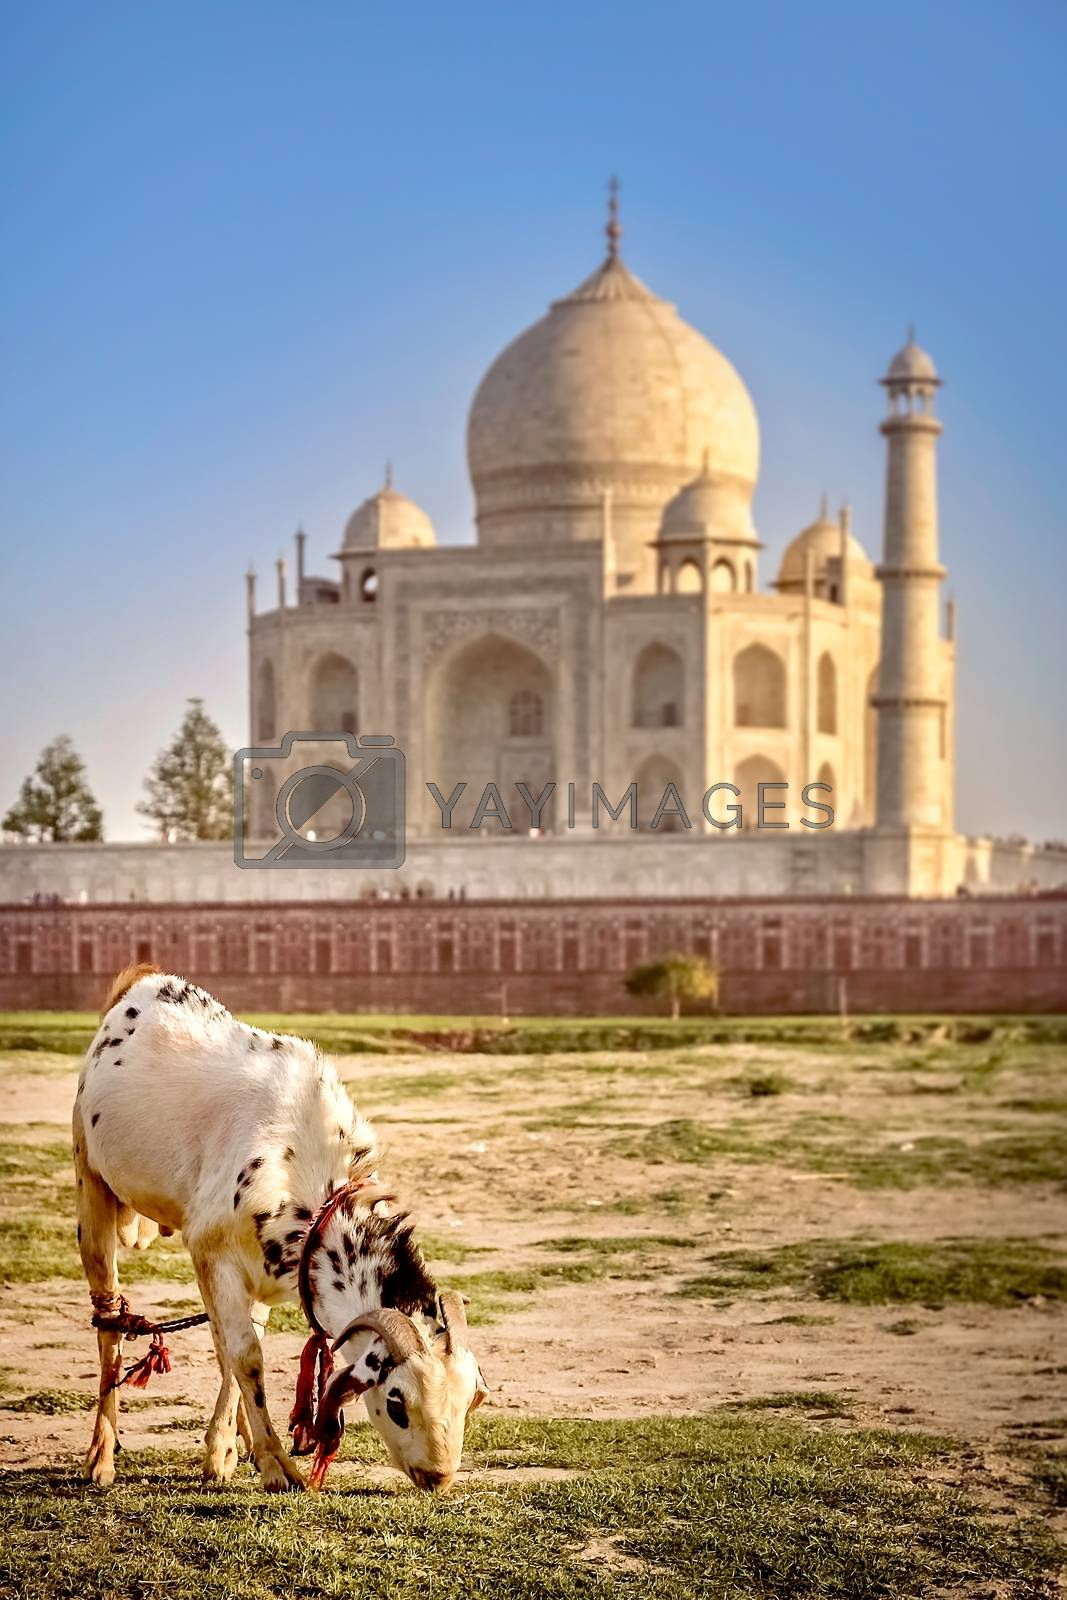 Goat grazing on the riverbank with Taj Mahal in the background